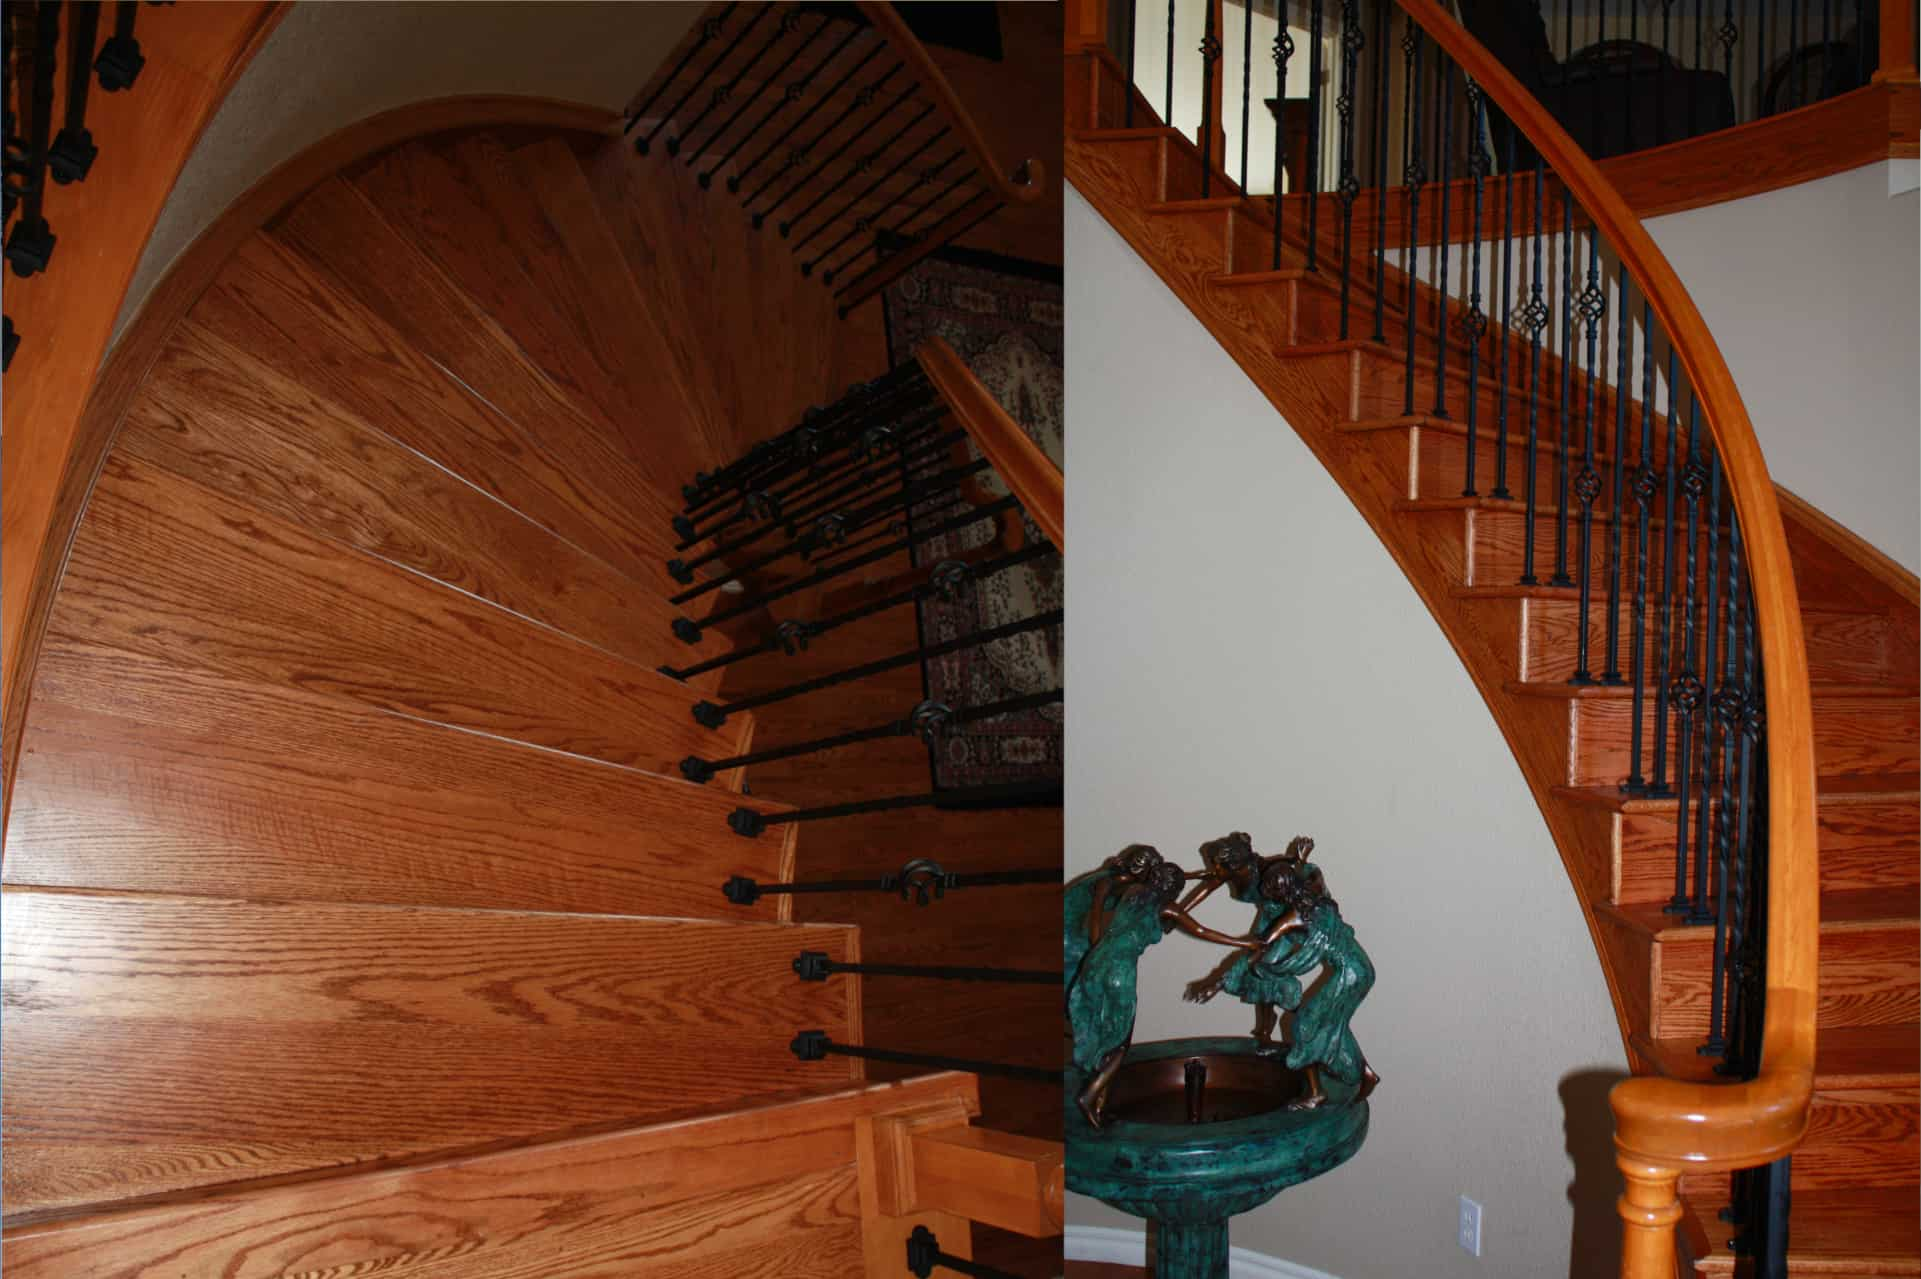 Unique spiral staircase in Urban wood creates one-of-a-kind home products , Mark Stephens, The Wooden Wish, Parker, Colorado